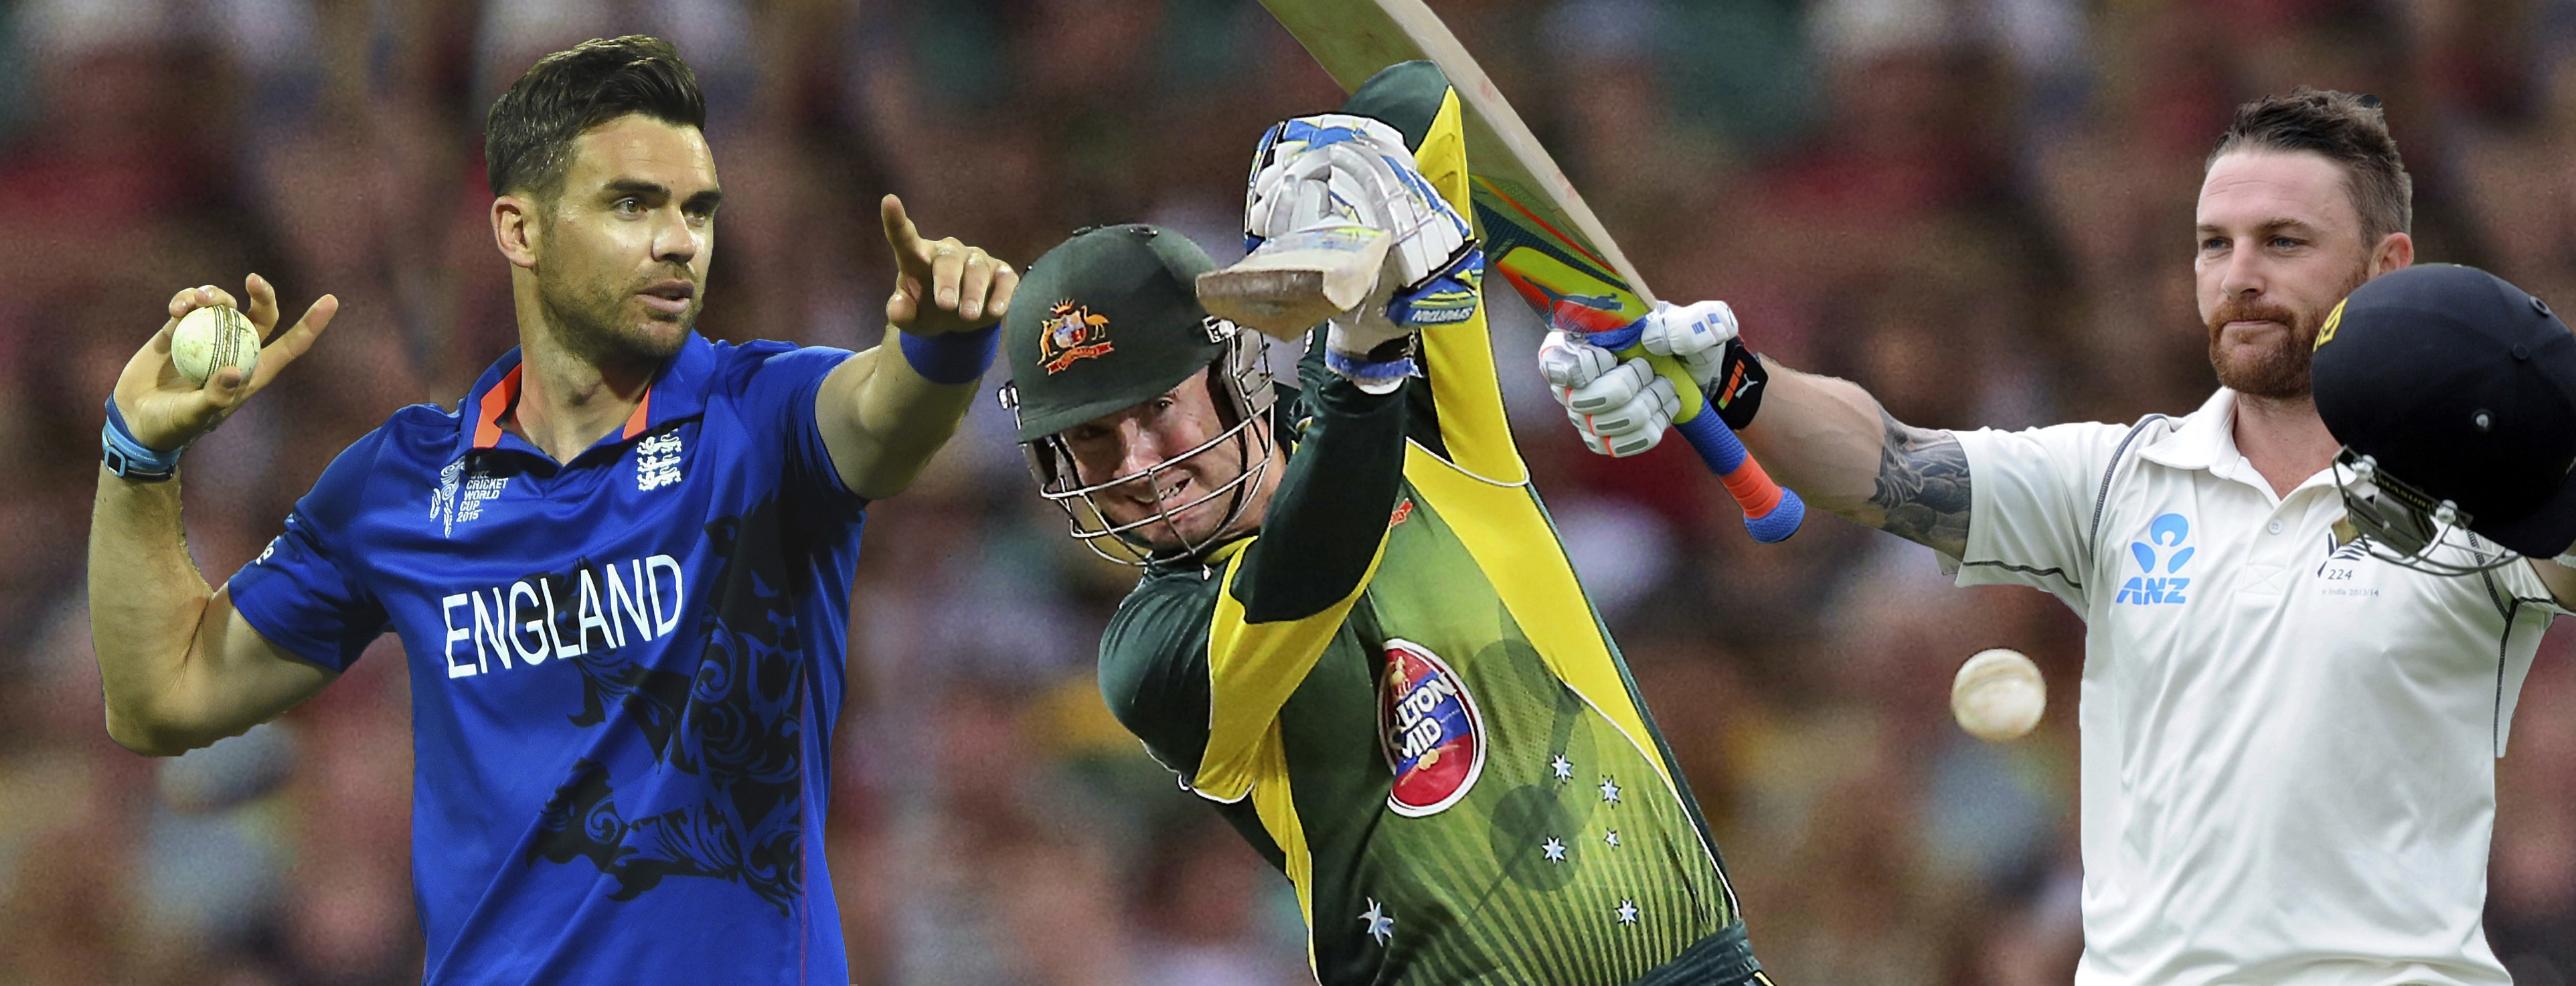 CRICKET_WORLD_CUP_PREVIEW_TOK108-2015FEB12_070008_052.jpg